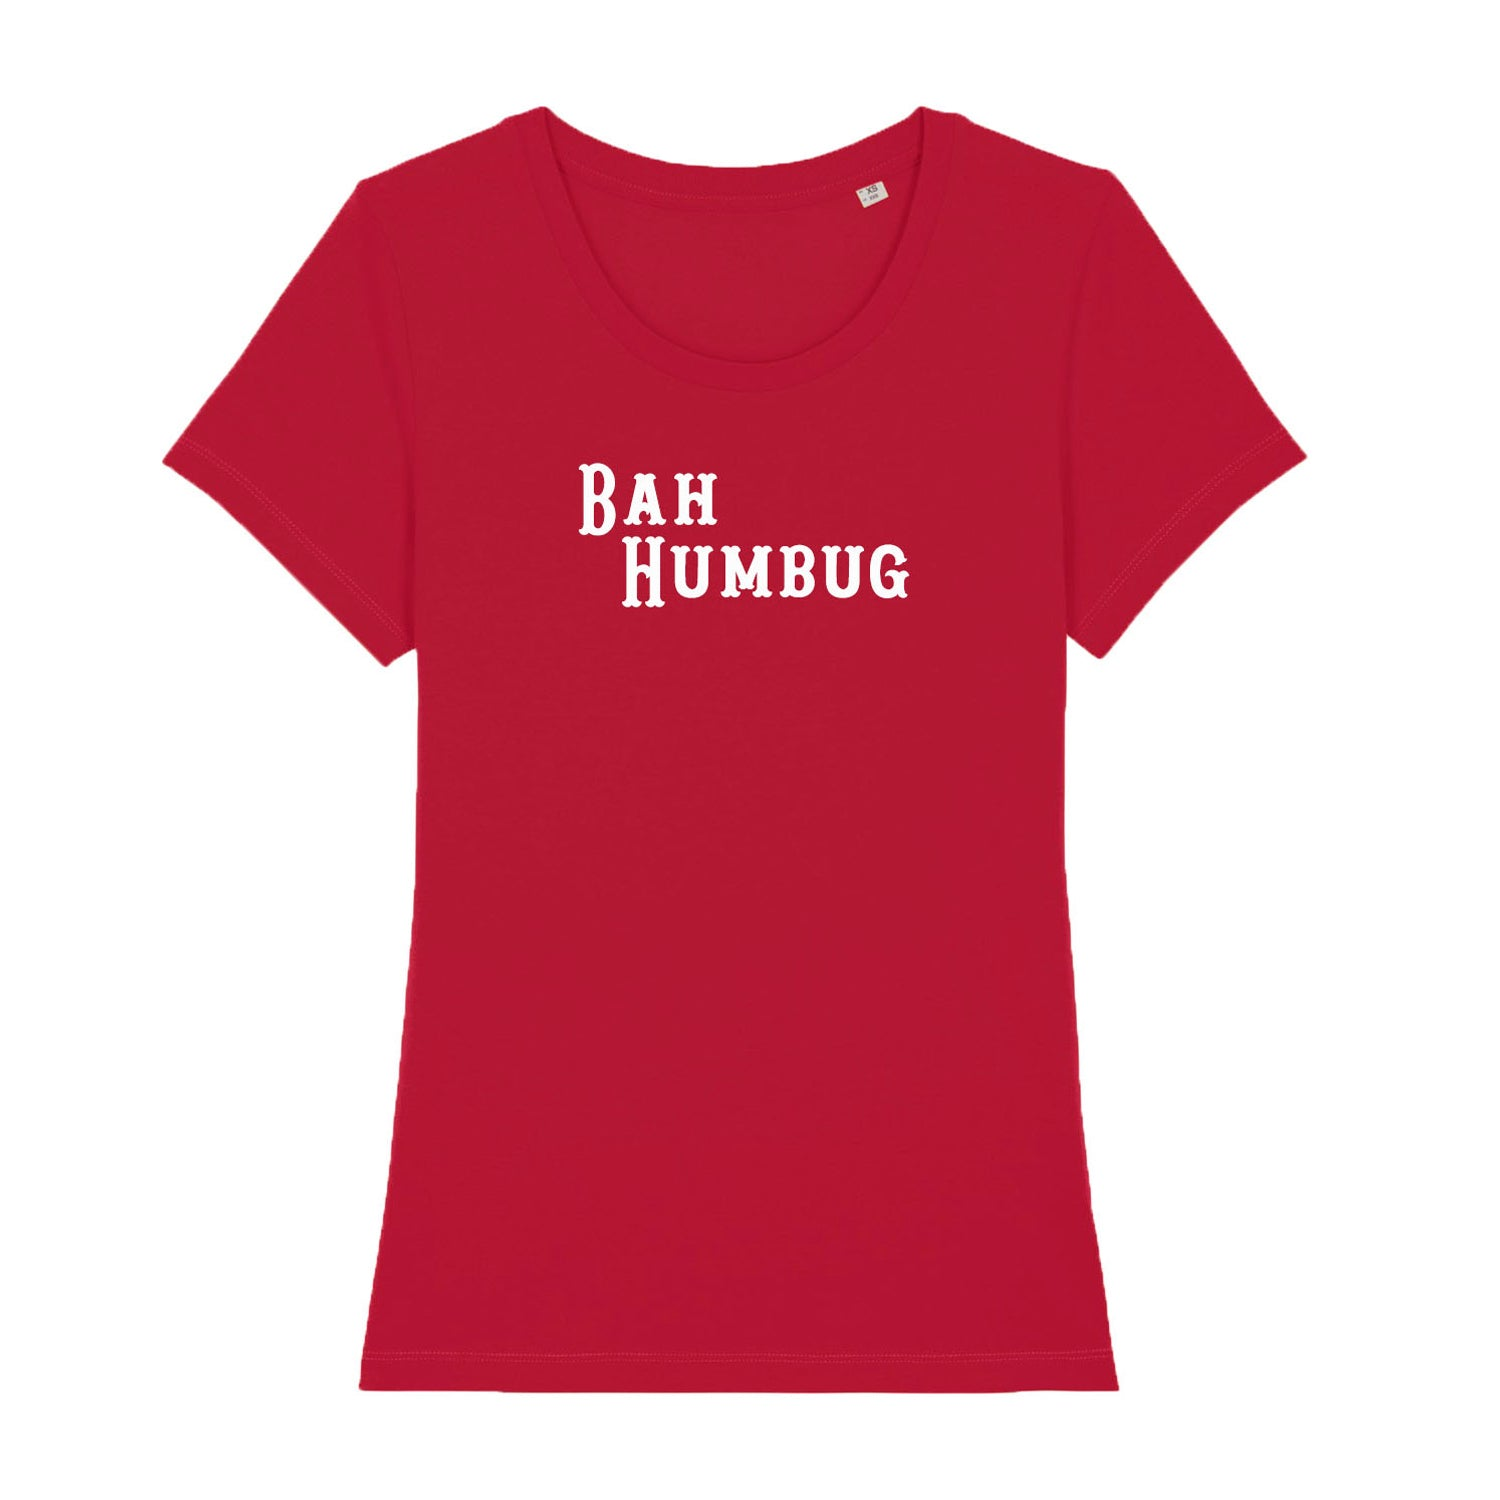 red womens t shirt with 'bah humbug' on it as a christmas jumper alternative